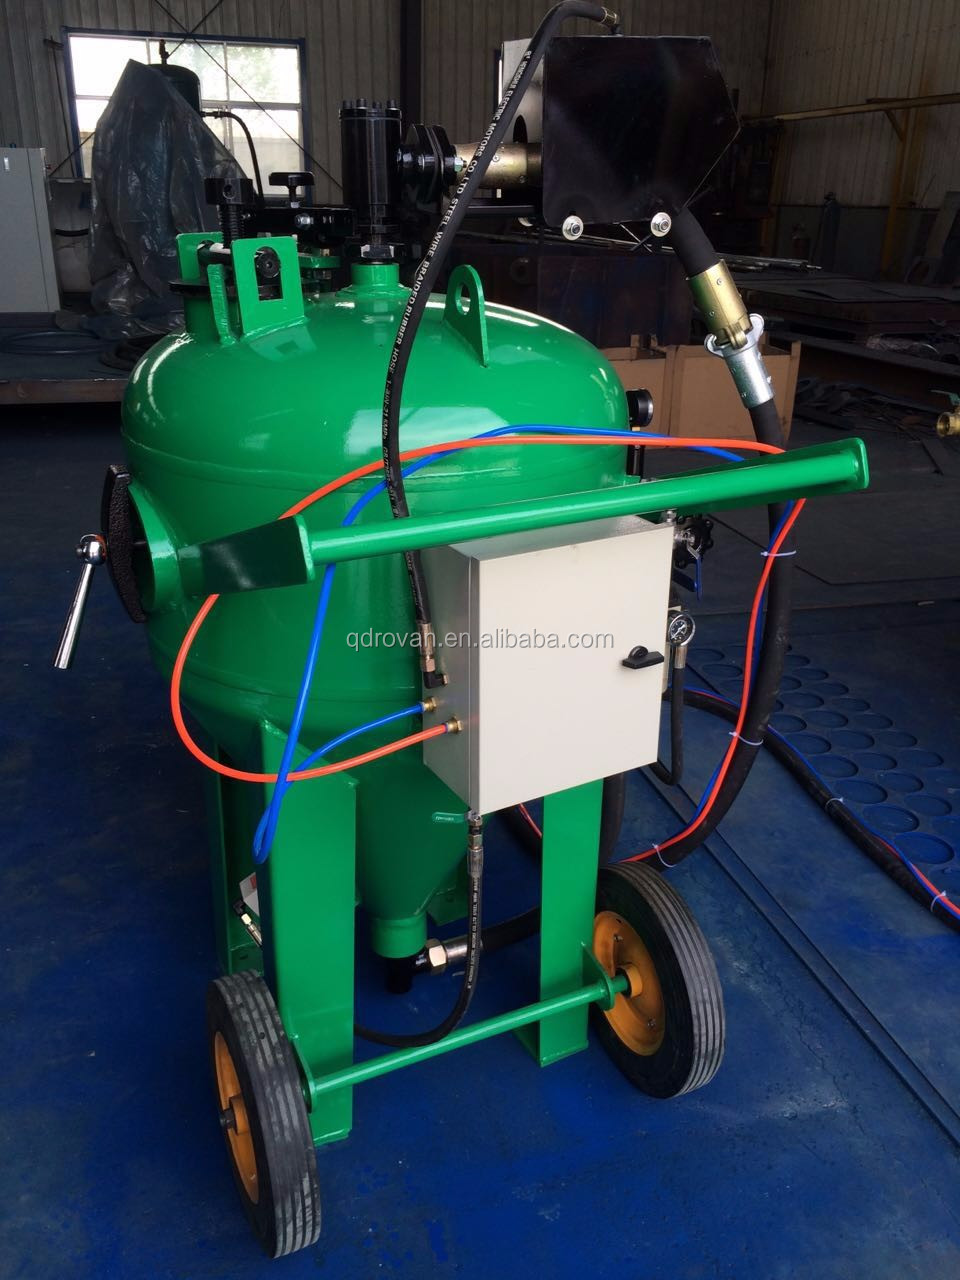 Eco-friendly Dustless Blasting, Protable Wet Dustless Sand Blasting Machine